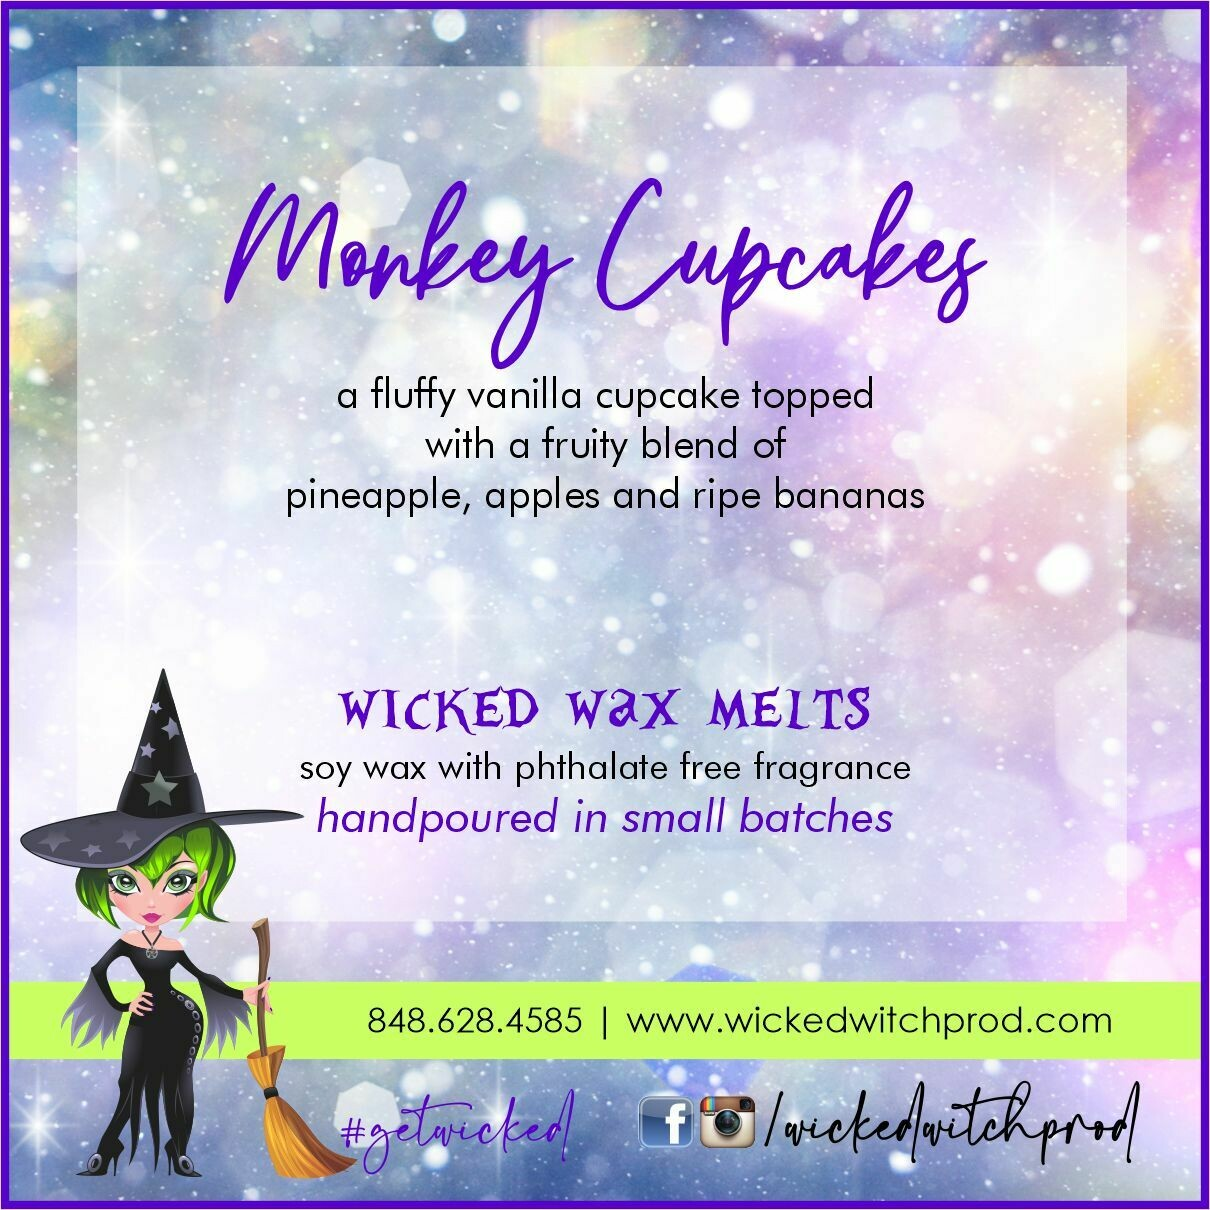 Monkey Cupcakes Wicked Wax Melts